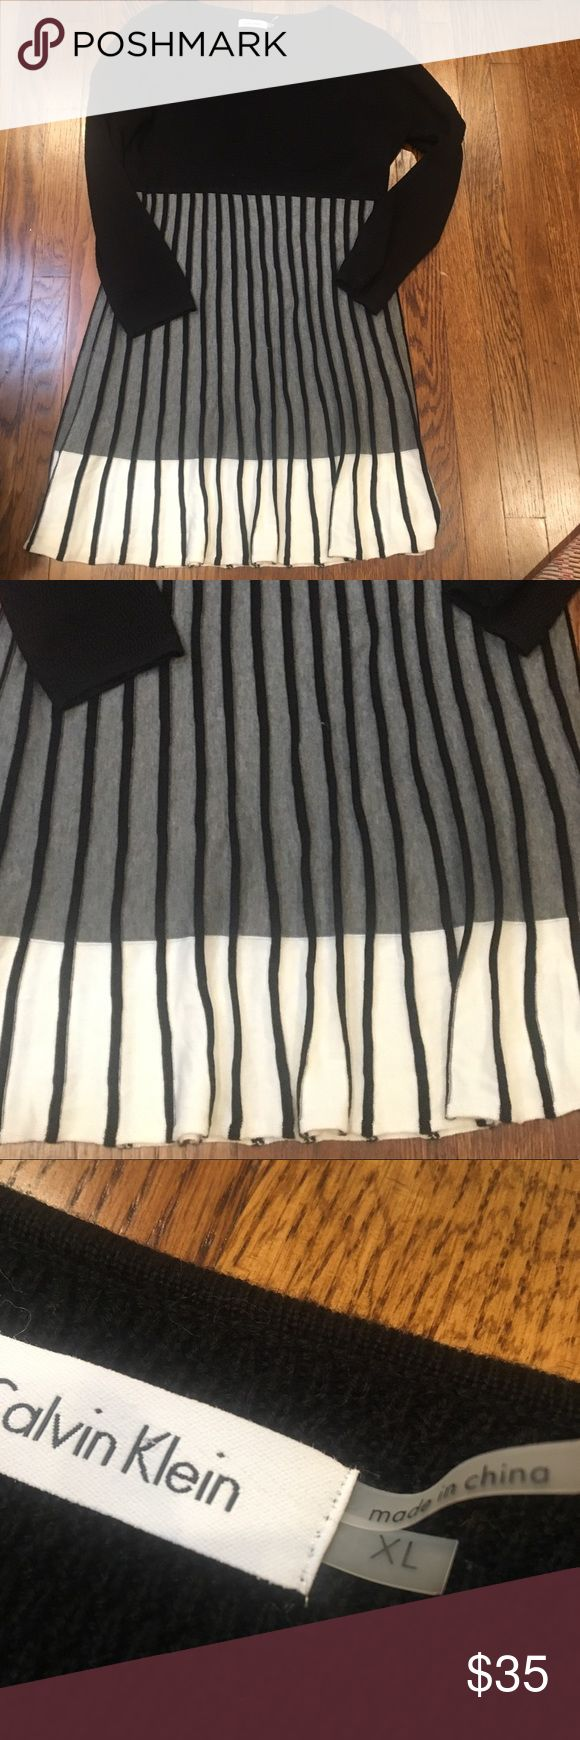 CALVIN KLEIN KNIT DRESS w TRUMPET SKIRT SZ XL A great staple for fall and winter this black, gray, and white Calvin Klein knit dress with trumpet skirt is perfect for work or even casual settings. Chest: 44 inches,  waist 44 inches; length from the front scope neck 32 inches. Calvin Klein Dresses Mini